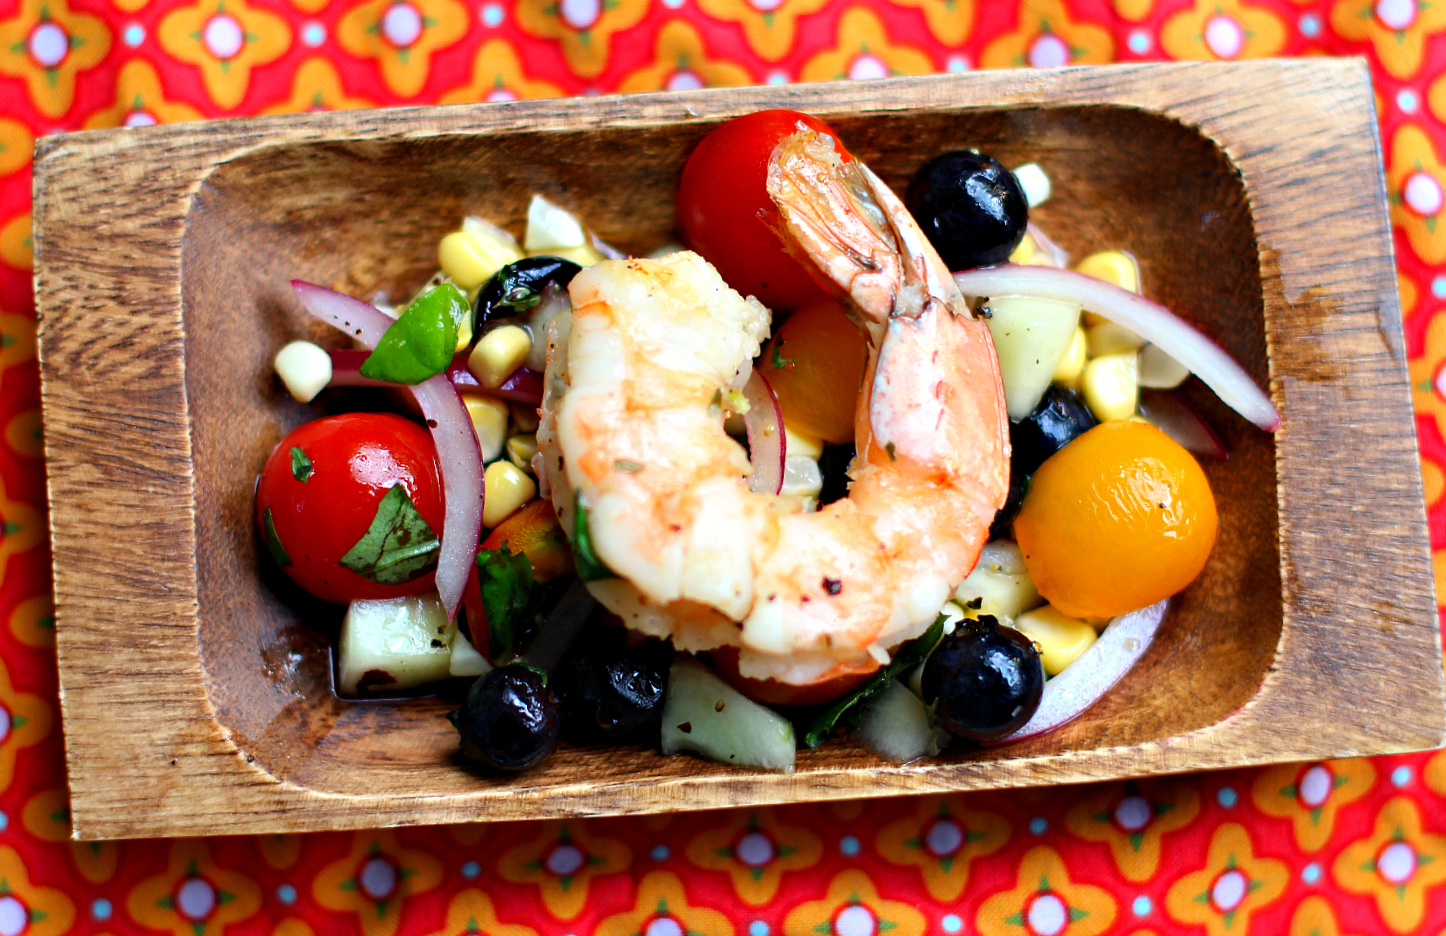 Corn & Blueberry Salad with Grilled Shrimp